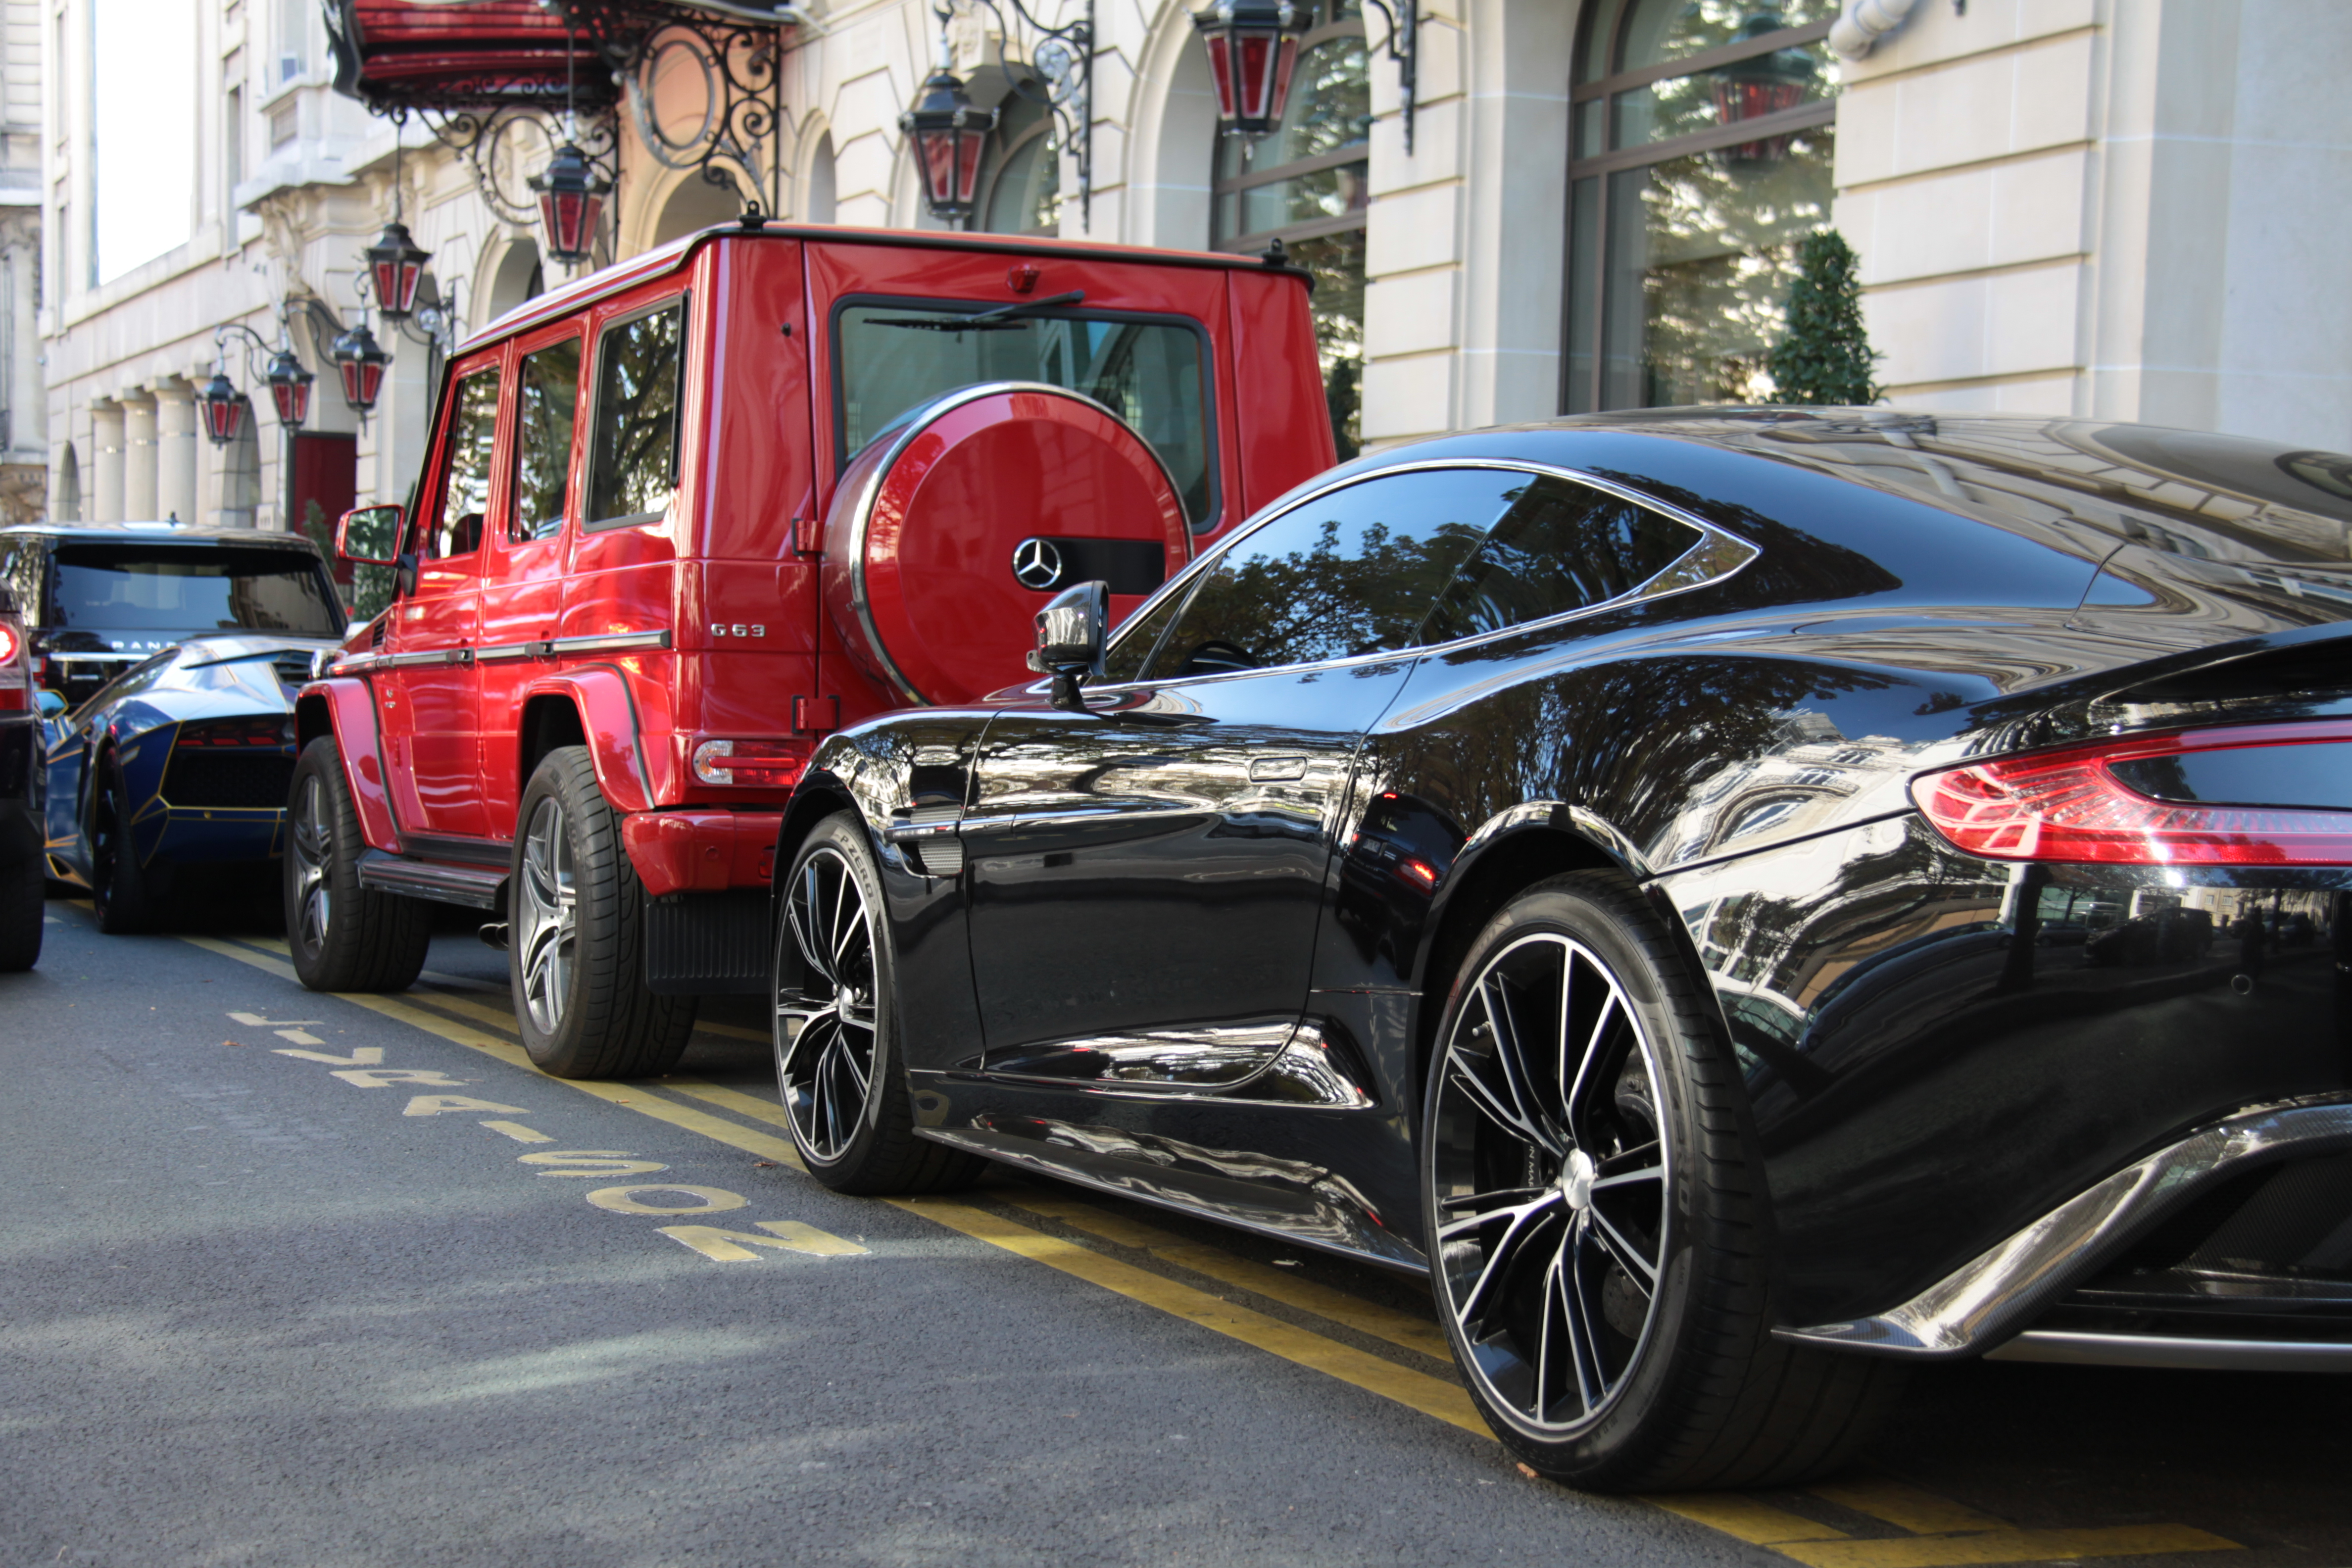 Line Up With A Perfect Vanquish A G Wagon And The Tron Aventador